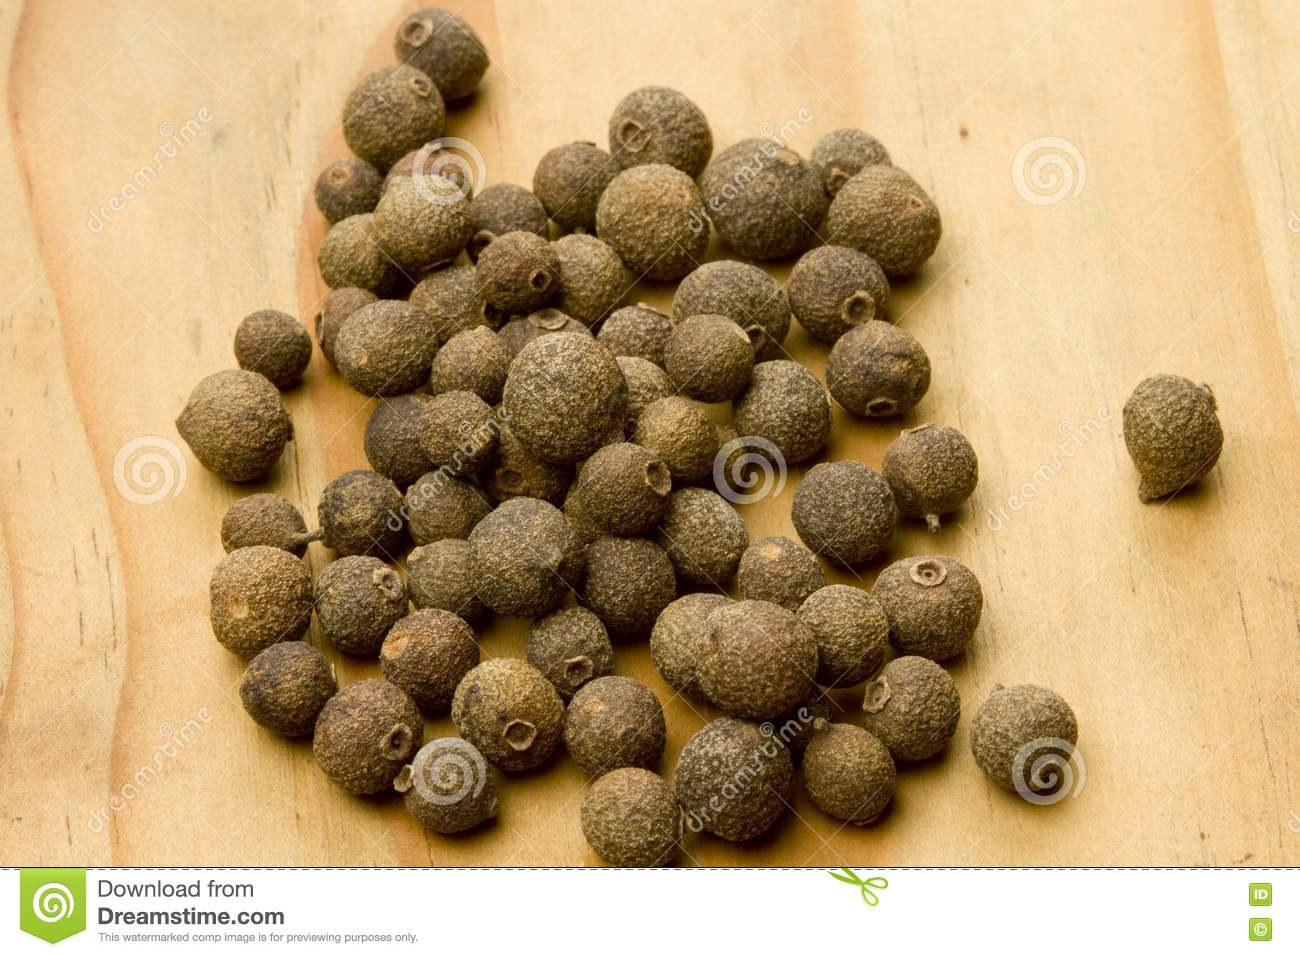 Allspice Pimenta Dioica Dried Berry Fruit Stock Photo ...